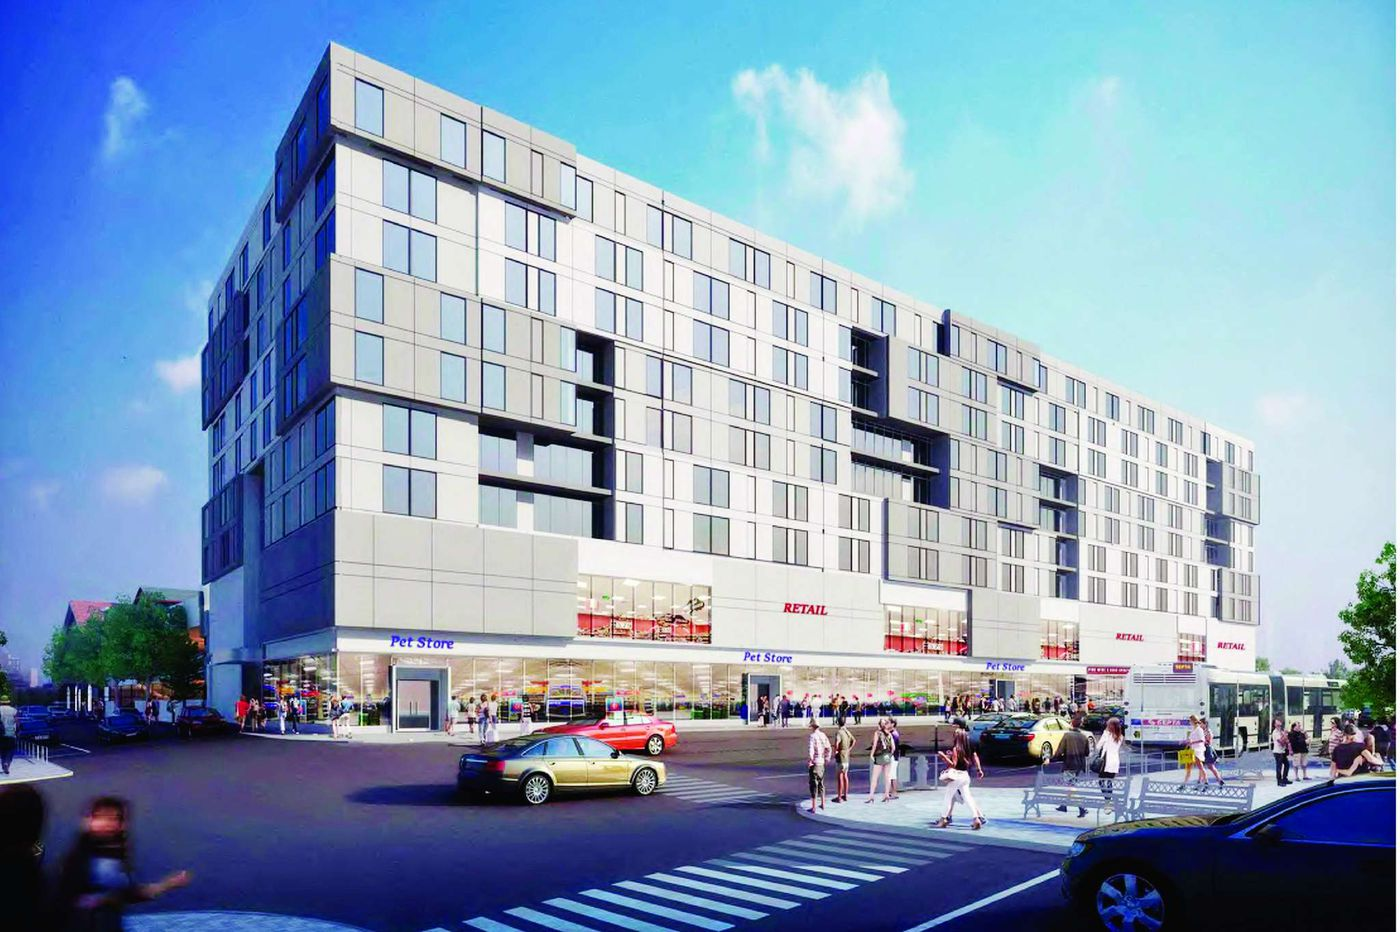 Target aiming for space in S. Broad St.'s Lincoln Square project, filing shows